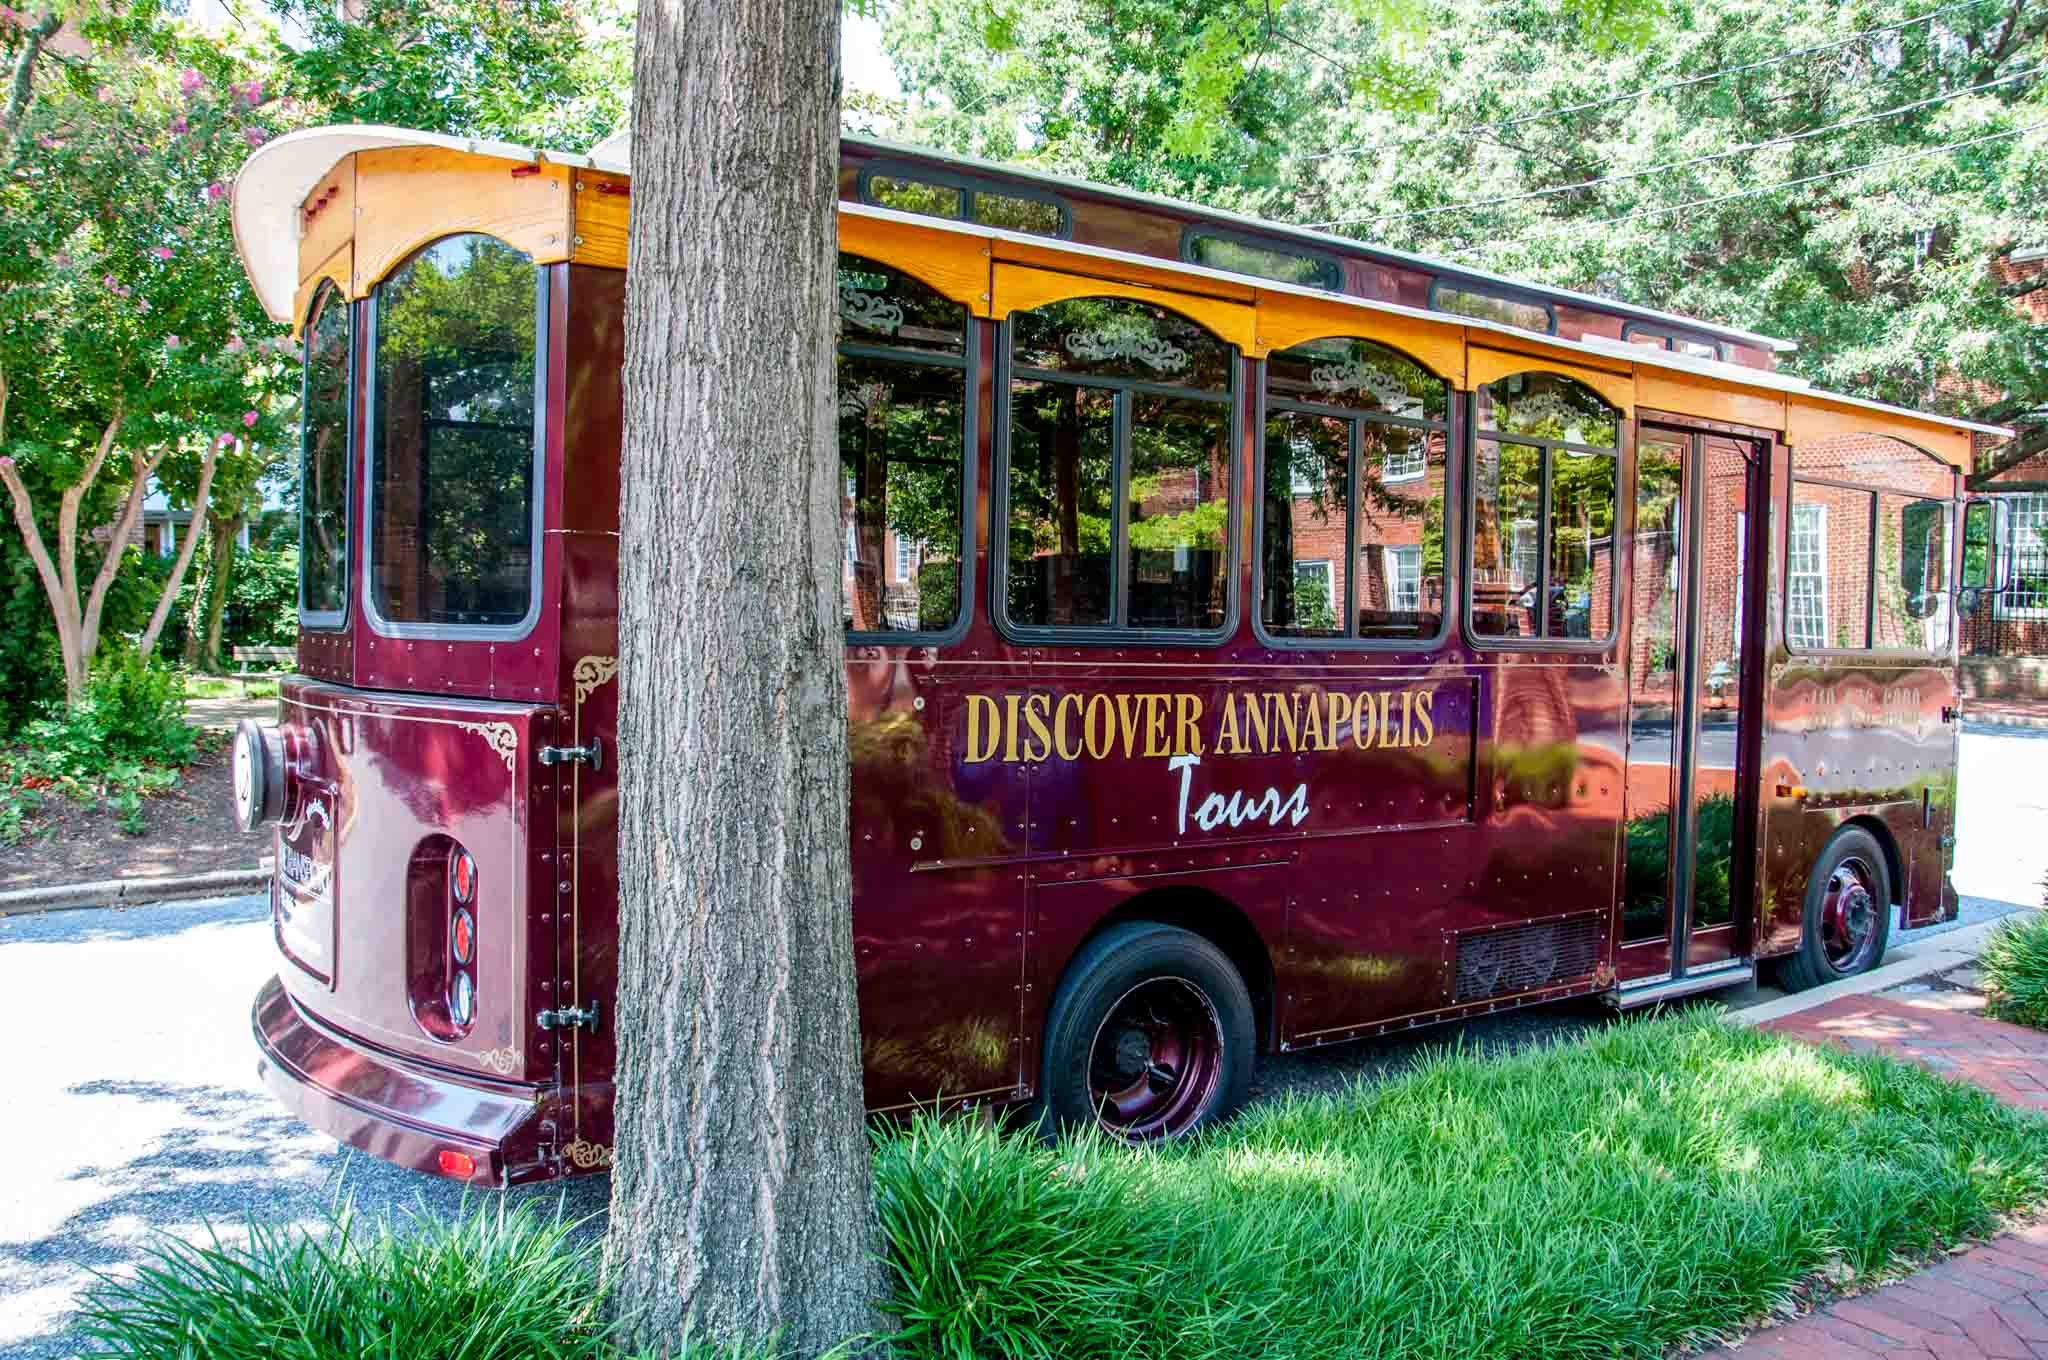 Red Discover Annapolis trolley car